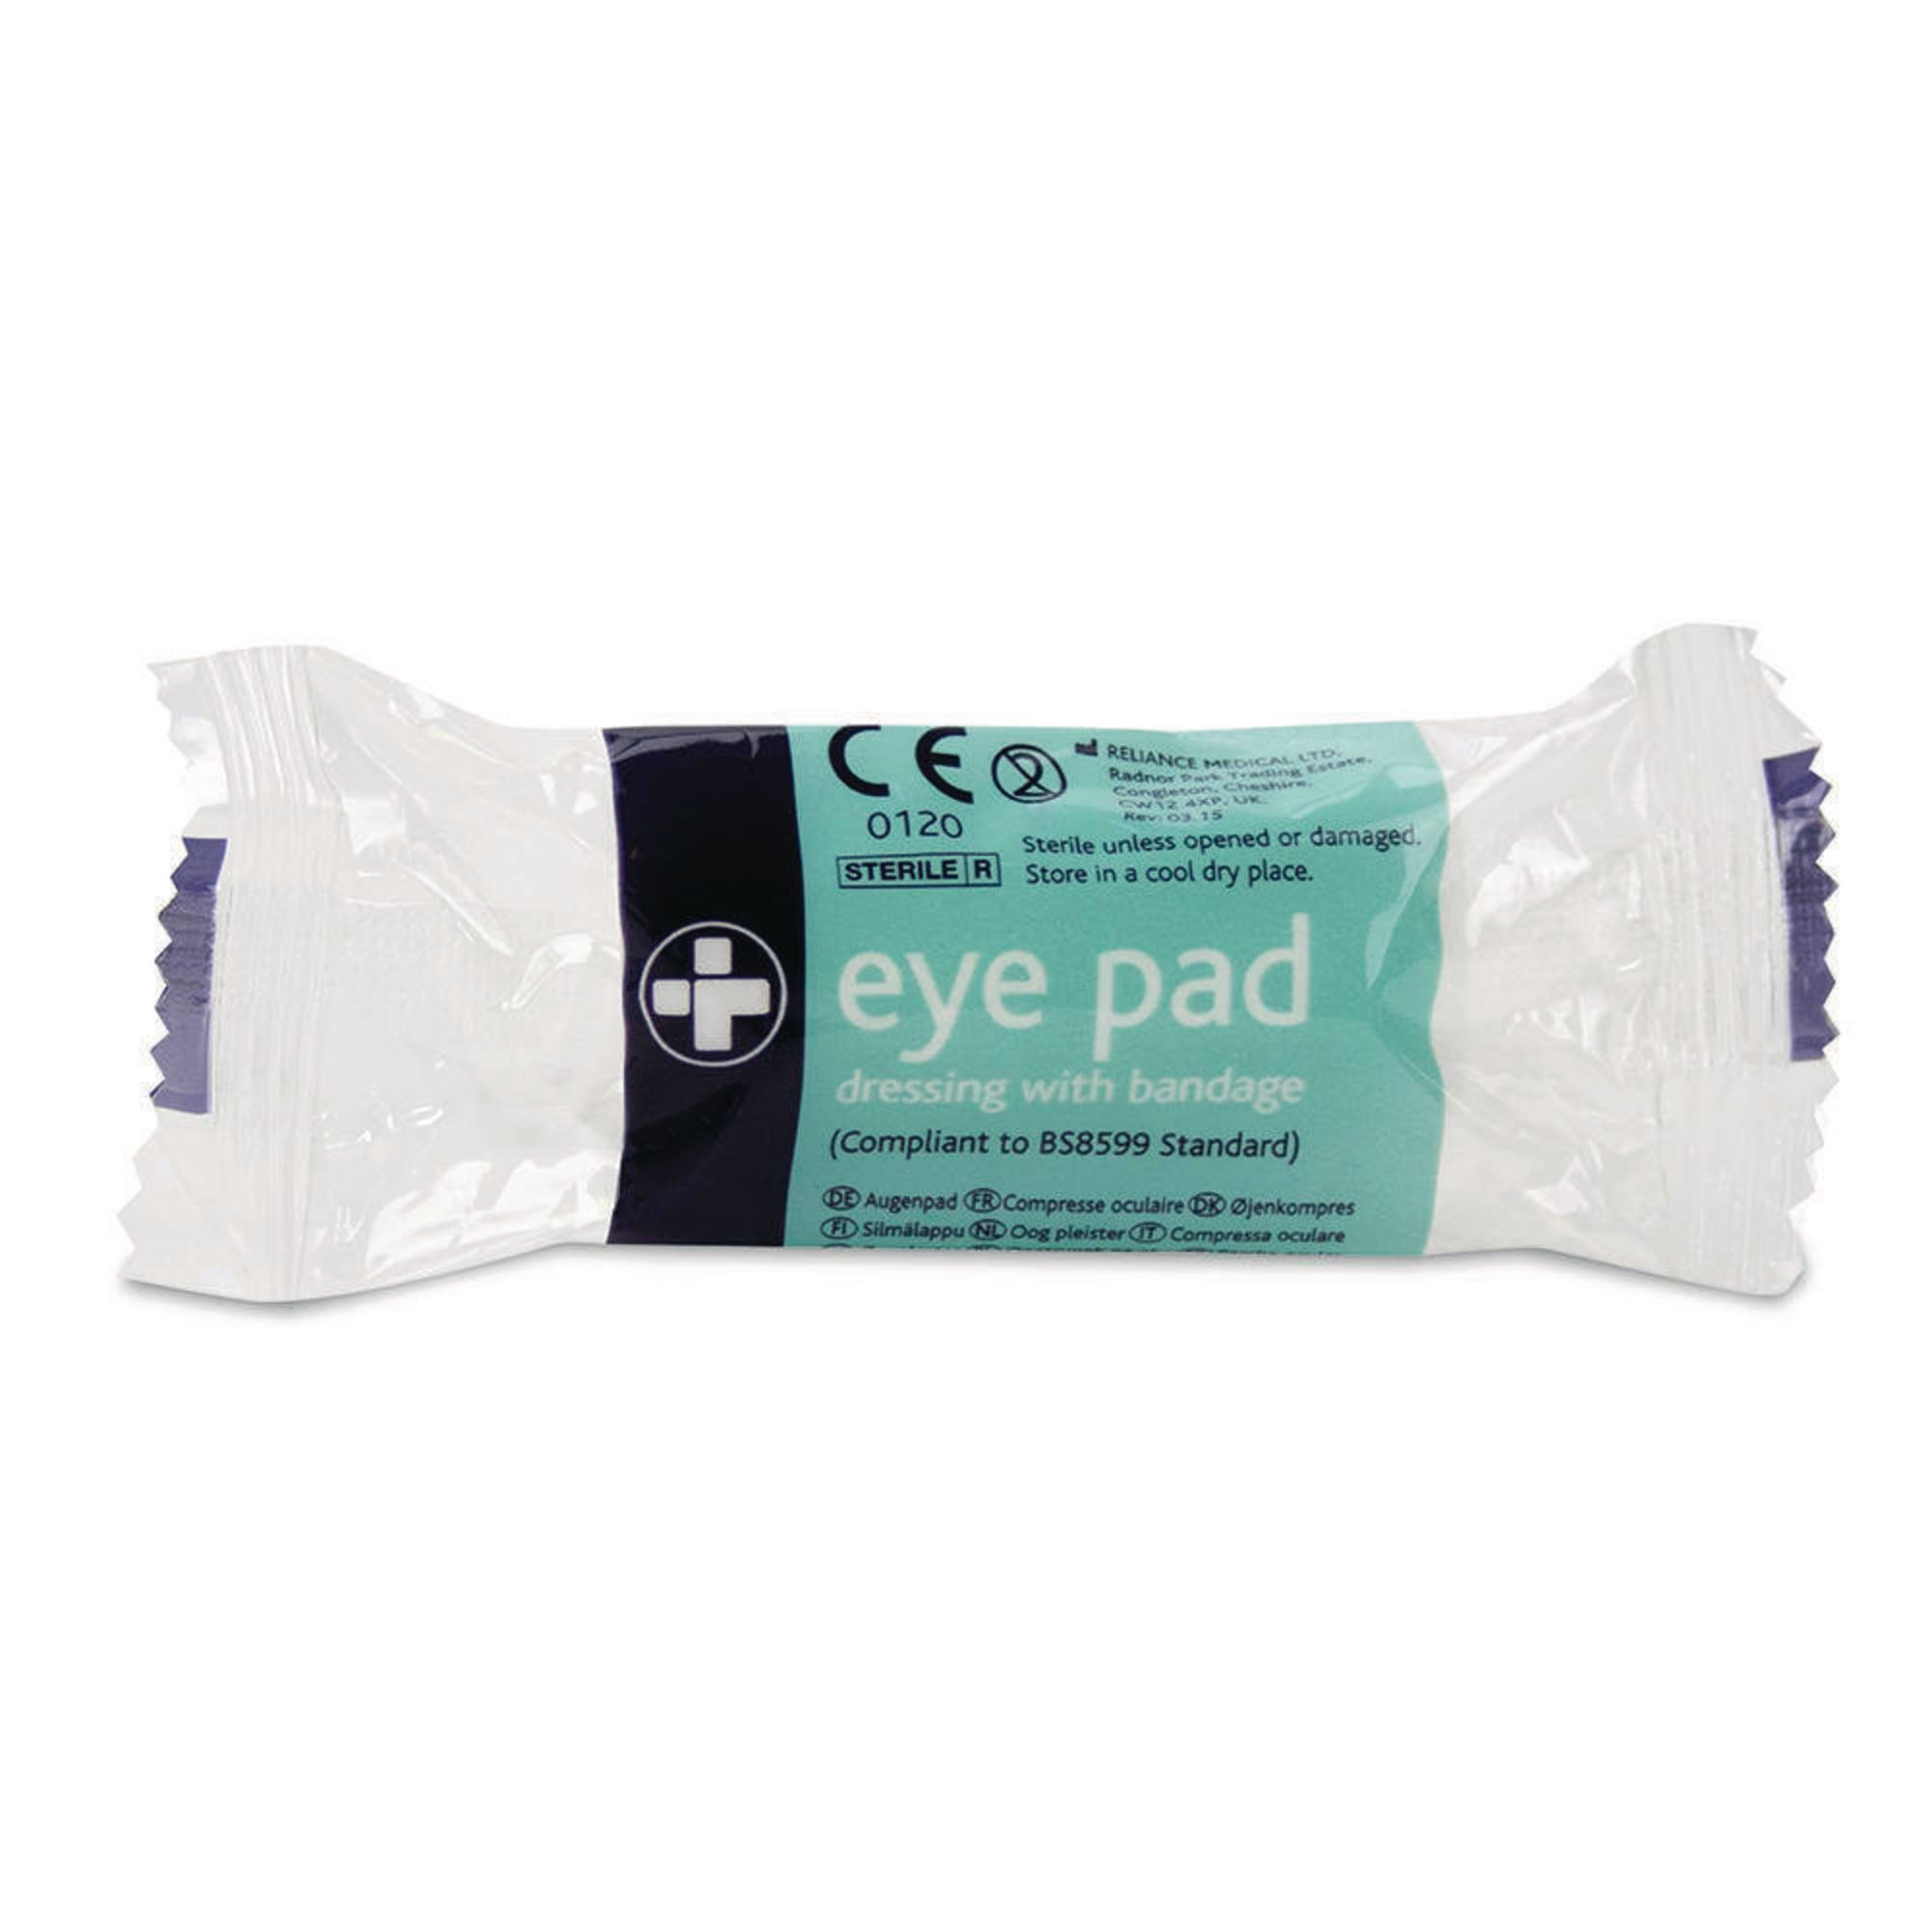 Eye Pad Dressing With Bandage